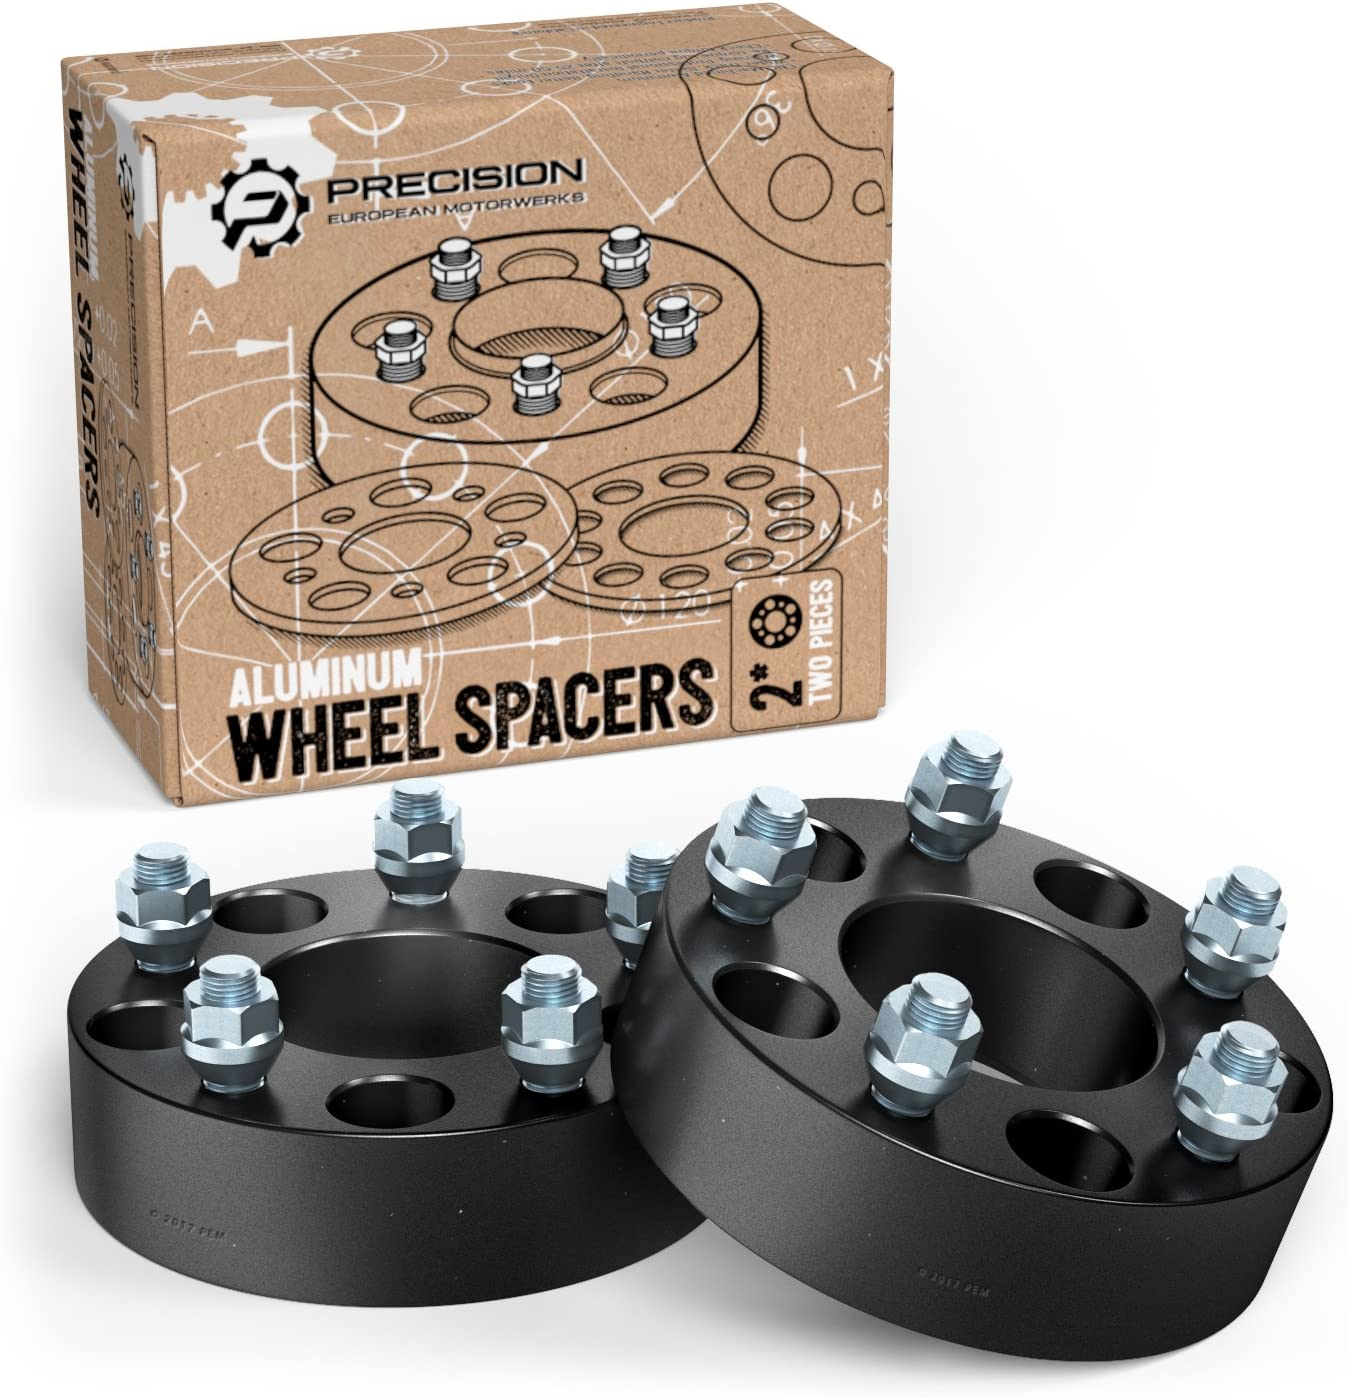 for Dodge Ram 1500 2pc Wheel Spacers Ford F100 F150 E100 E150 Bronco RockTrix for Precision European Jeep CJ3 CJ5 CJ6 CJ7 Scrambler 2 Thick Silver Color Precision European Motorwerks 5x5.5 to 5x5.5 with 1//2 Studs